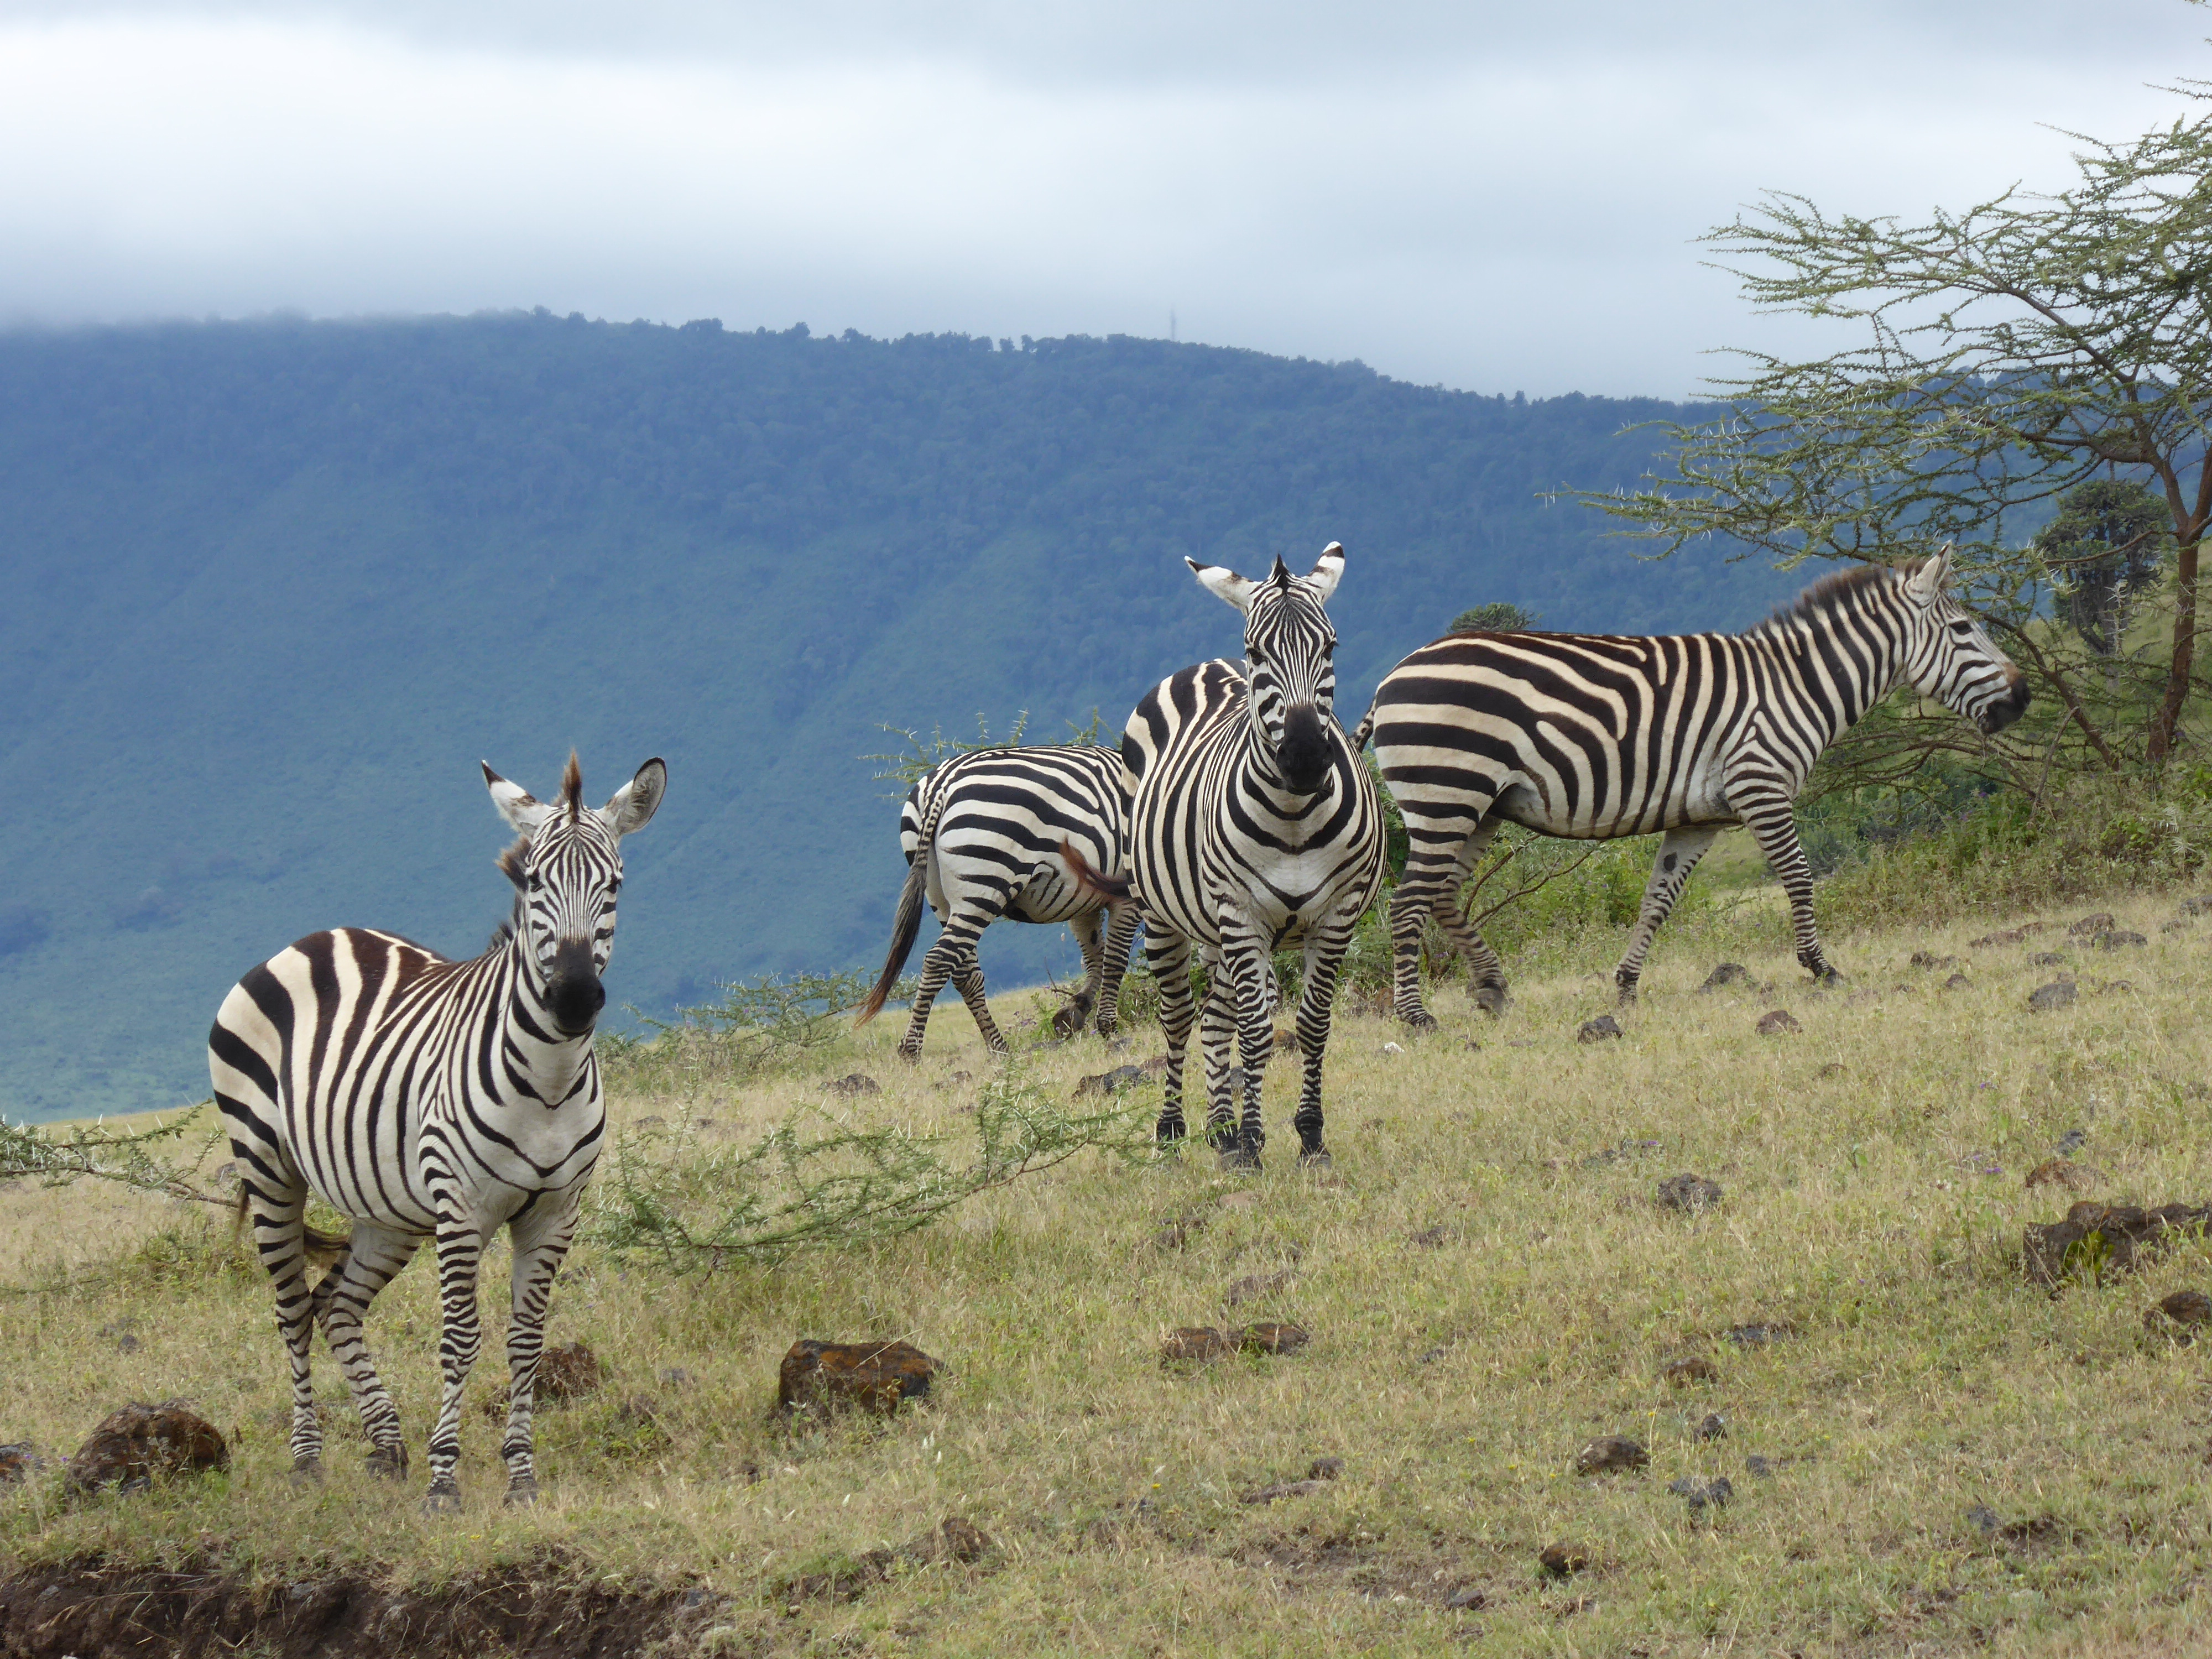 A SAFARI IN KENYA: 16 ANIMALS YOU CAN EXPECT TO SEE